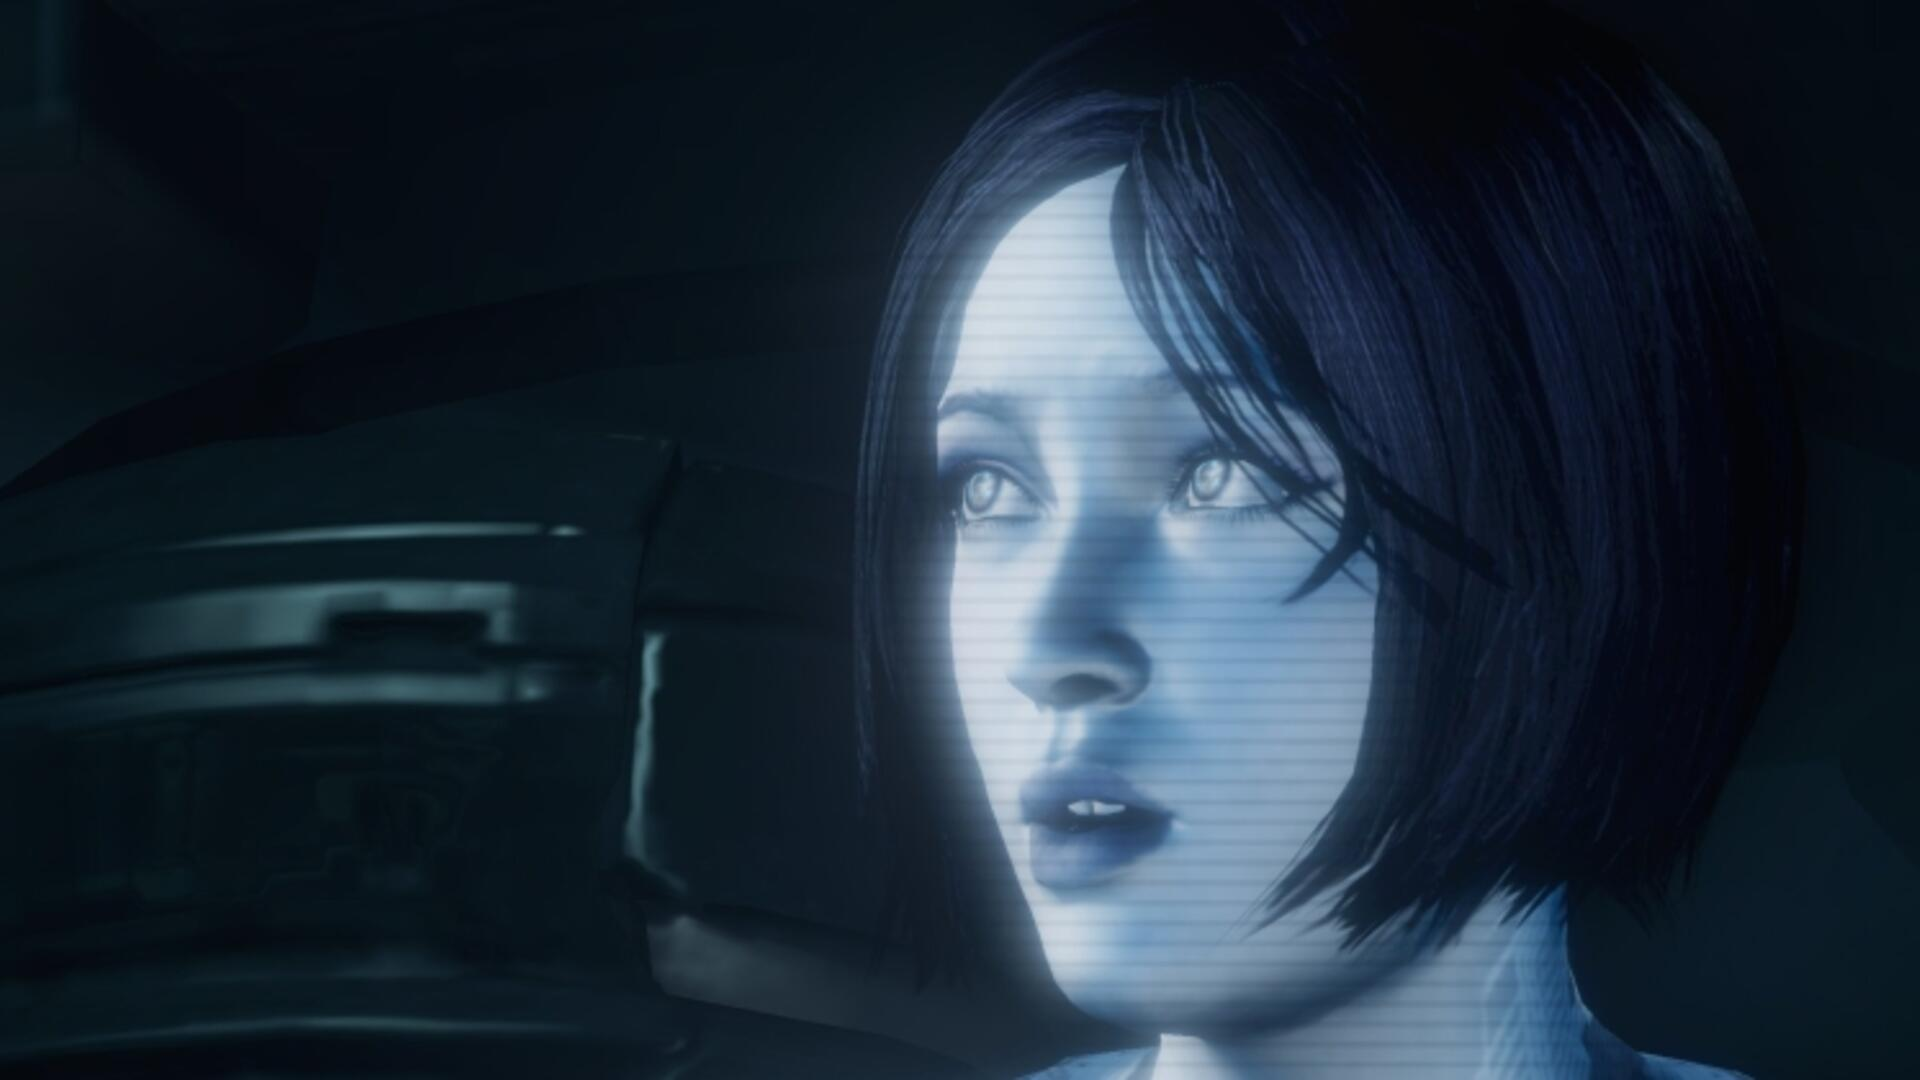 Cortana Lives in Your Windows 8.1 Phone and Learns What You Like